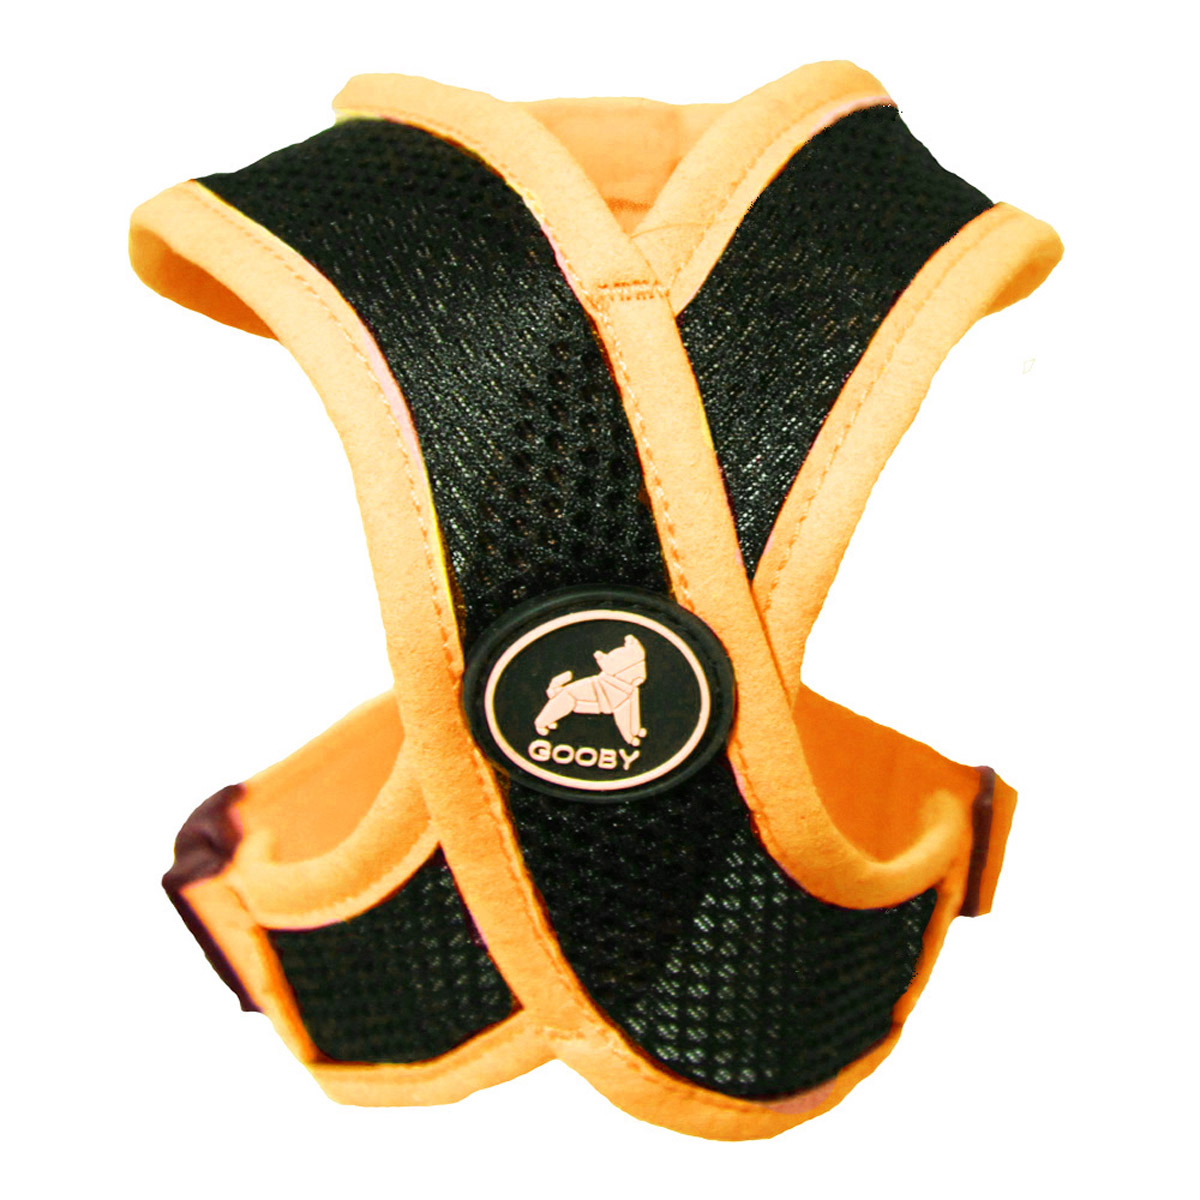 active x dog harnessgooby orange 8625 active x dog harness by gooby orange baxterboo